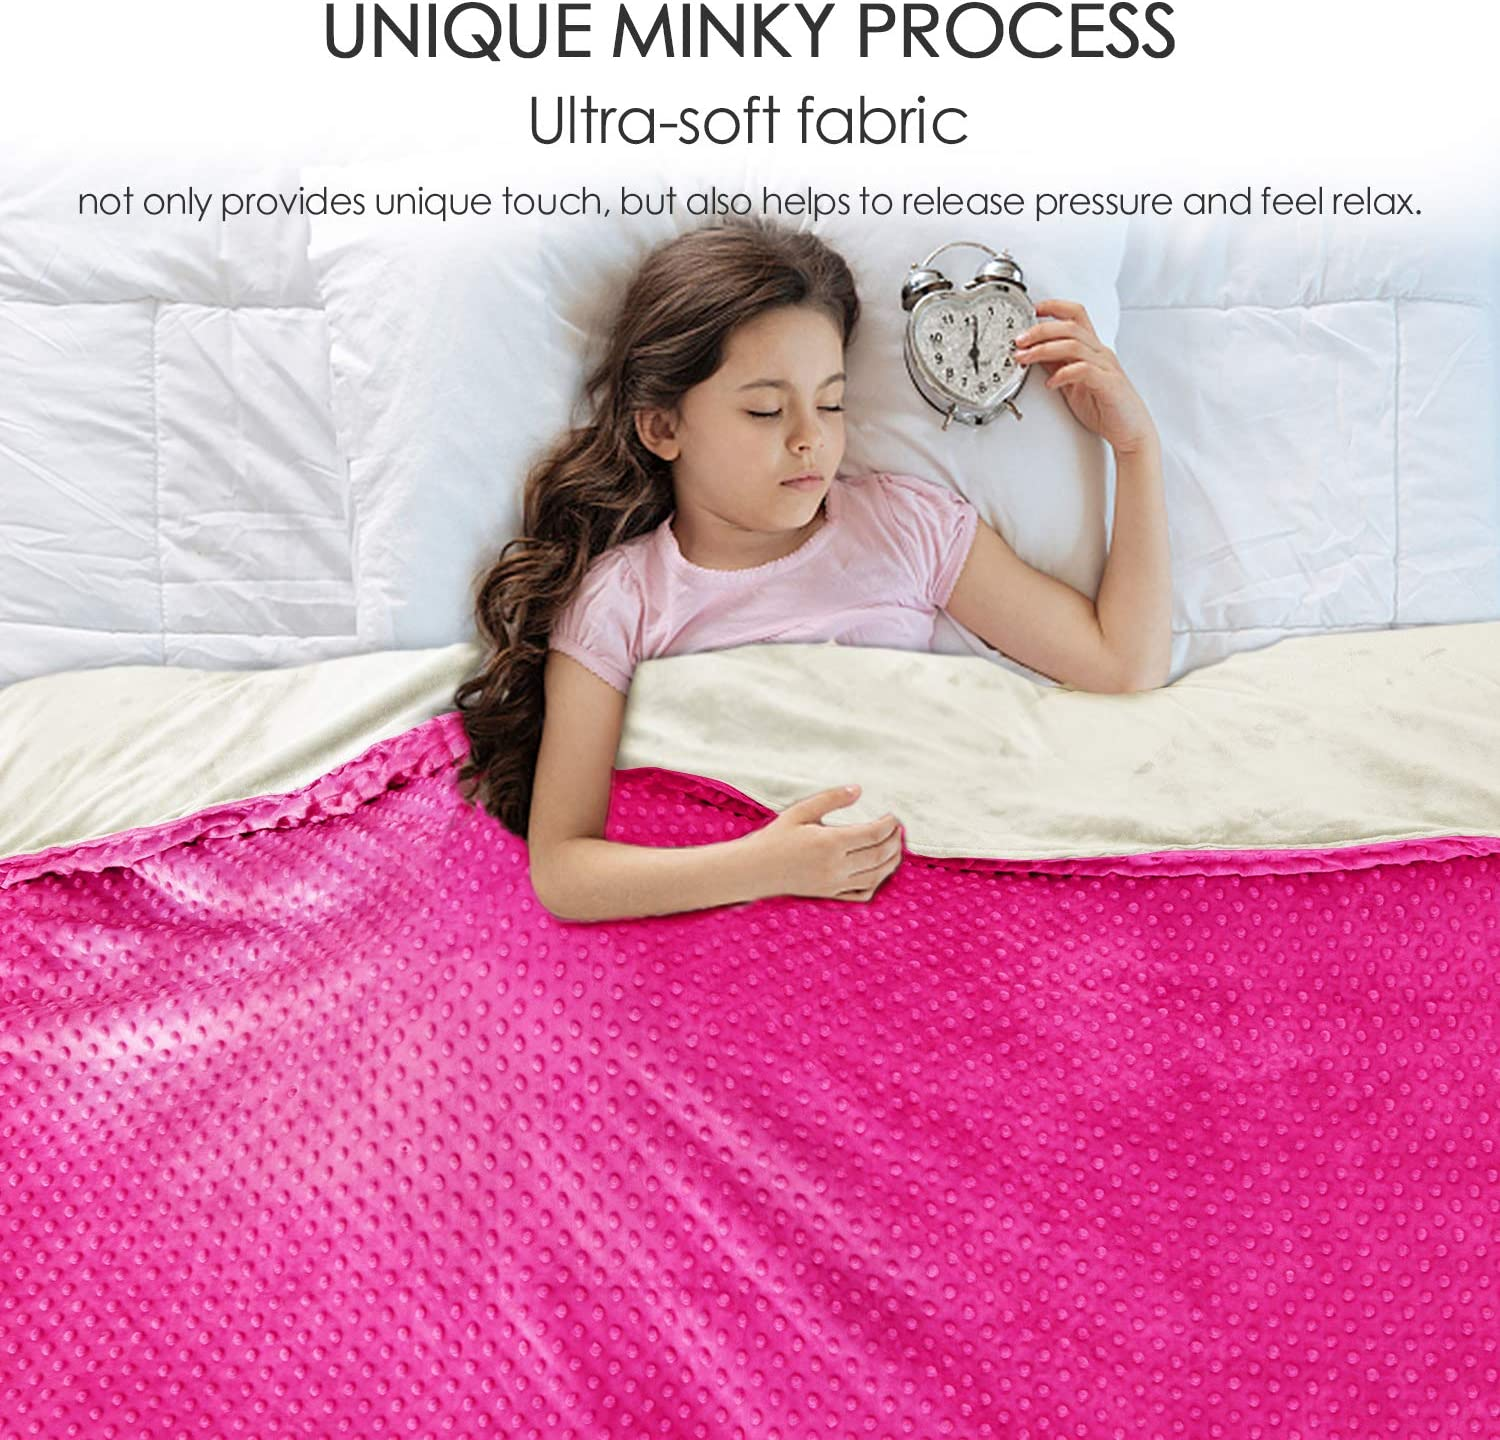 Anjee Cooling 5 lbs Weighted Blankets for Girls with Ultra-Soft Minky Cover, Heavy Blanket Help Deep Sleep, 36 x 48 Inches, Cotton/Minky, Grey/Pink